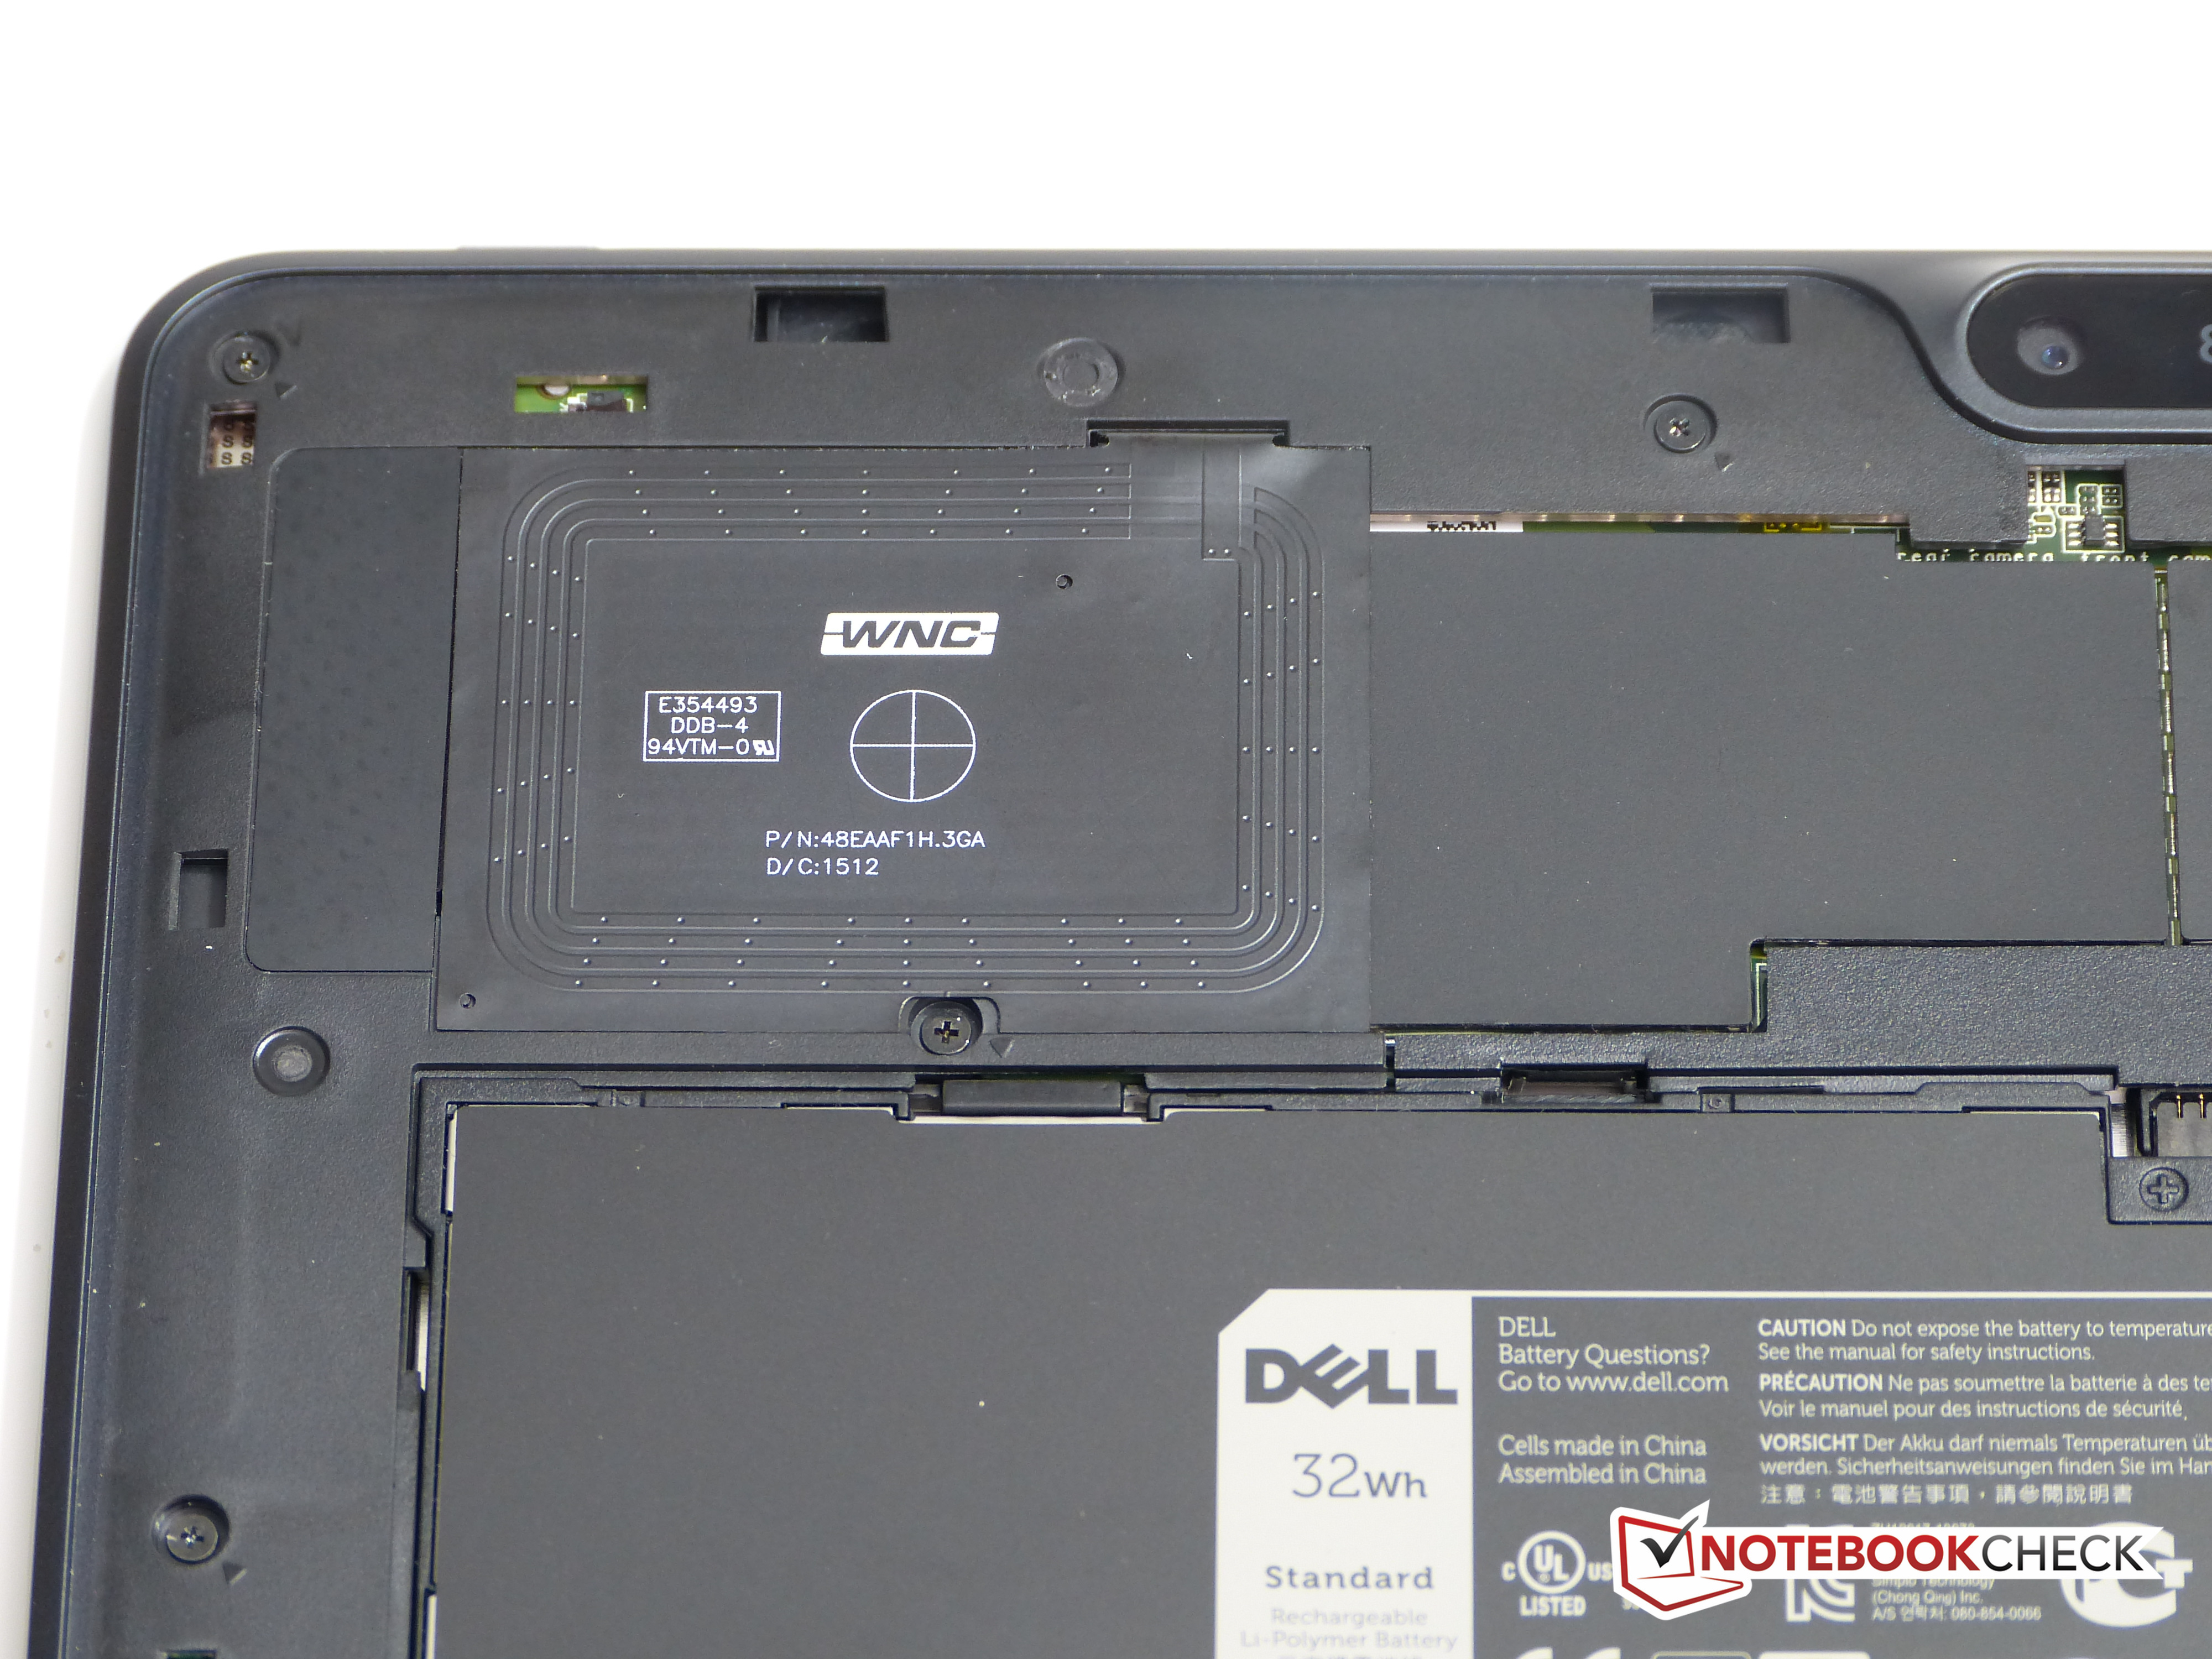 Dell Venue 11 Pro 5130-9356 Tablet Review - NotebookCheck net Reviews